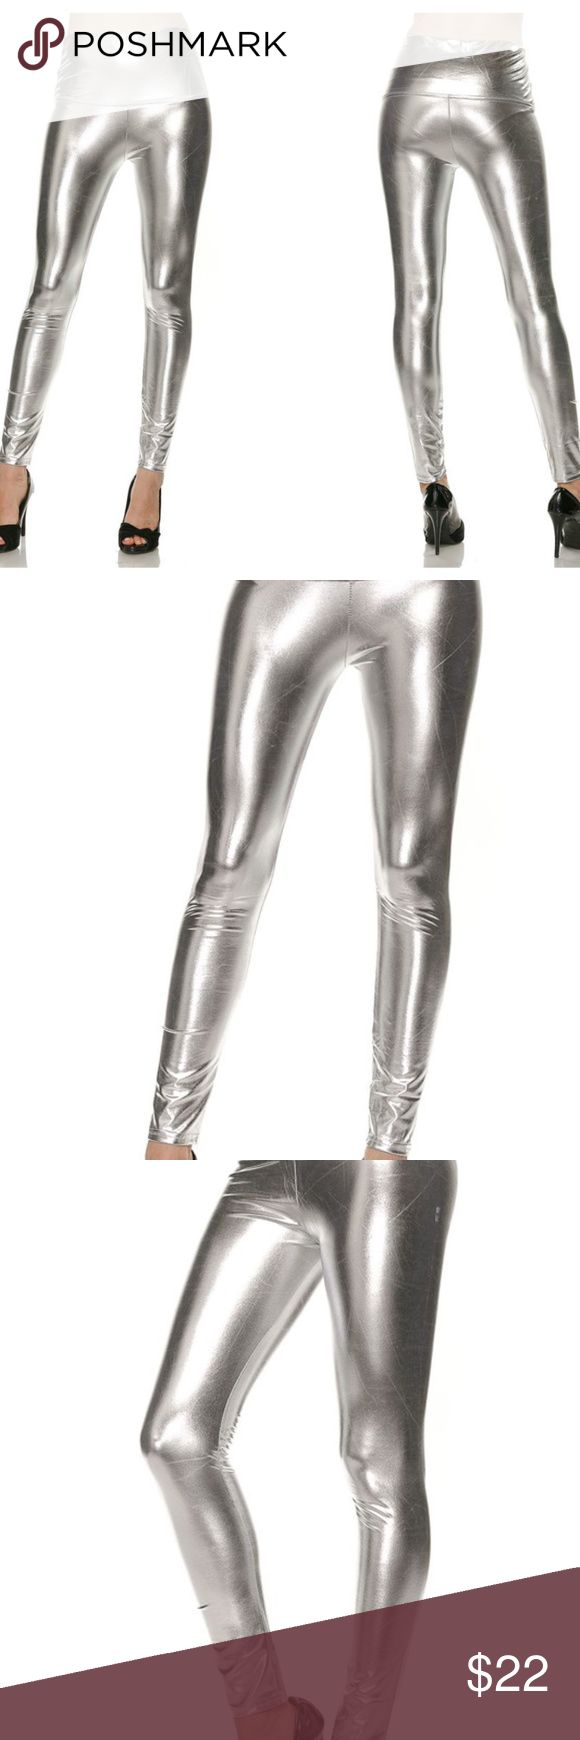 "Silver Faux Leather Leggings S/M High waisted vegan shiny silver liquid leather stretch legging \ footless tights. Elastic waistband. Perfect with a rocker tee & some combat boots, or chunky oversized sweater/tunic. 92% polyester 8% spandex. PLEASE SELECT YOUR CHOICE OF: ""Small/Medium"" or ""Medium/Large"". (Other sizes shown below are for search results only) Black available in another listing.  Price Firm Unless Bundled No Trades Pants Leggings"